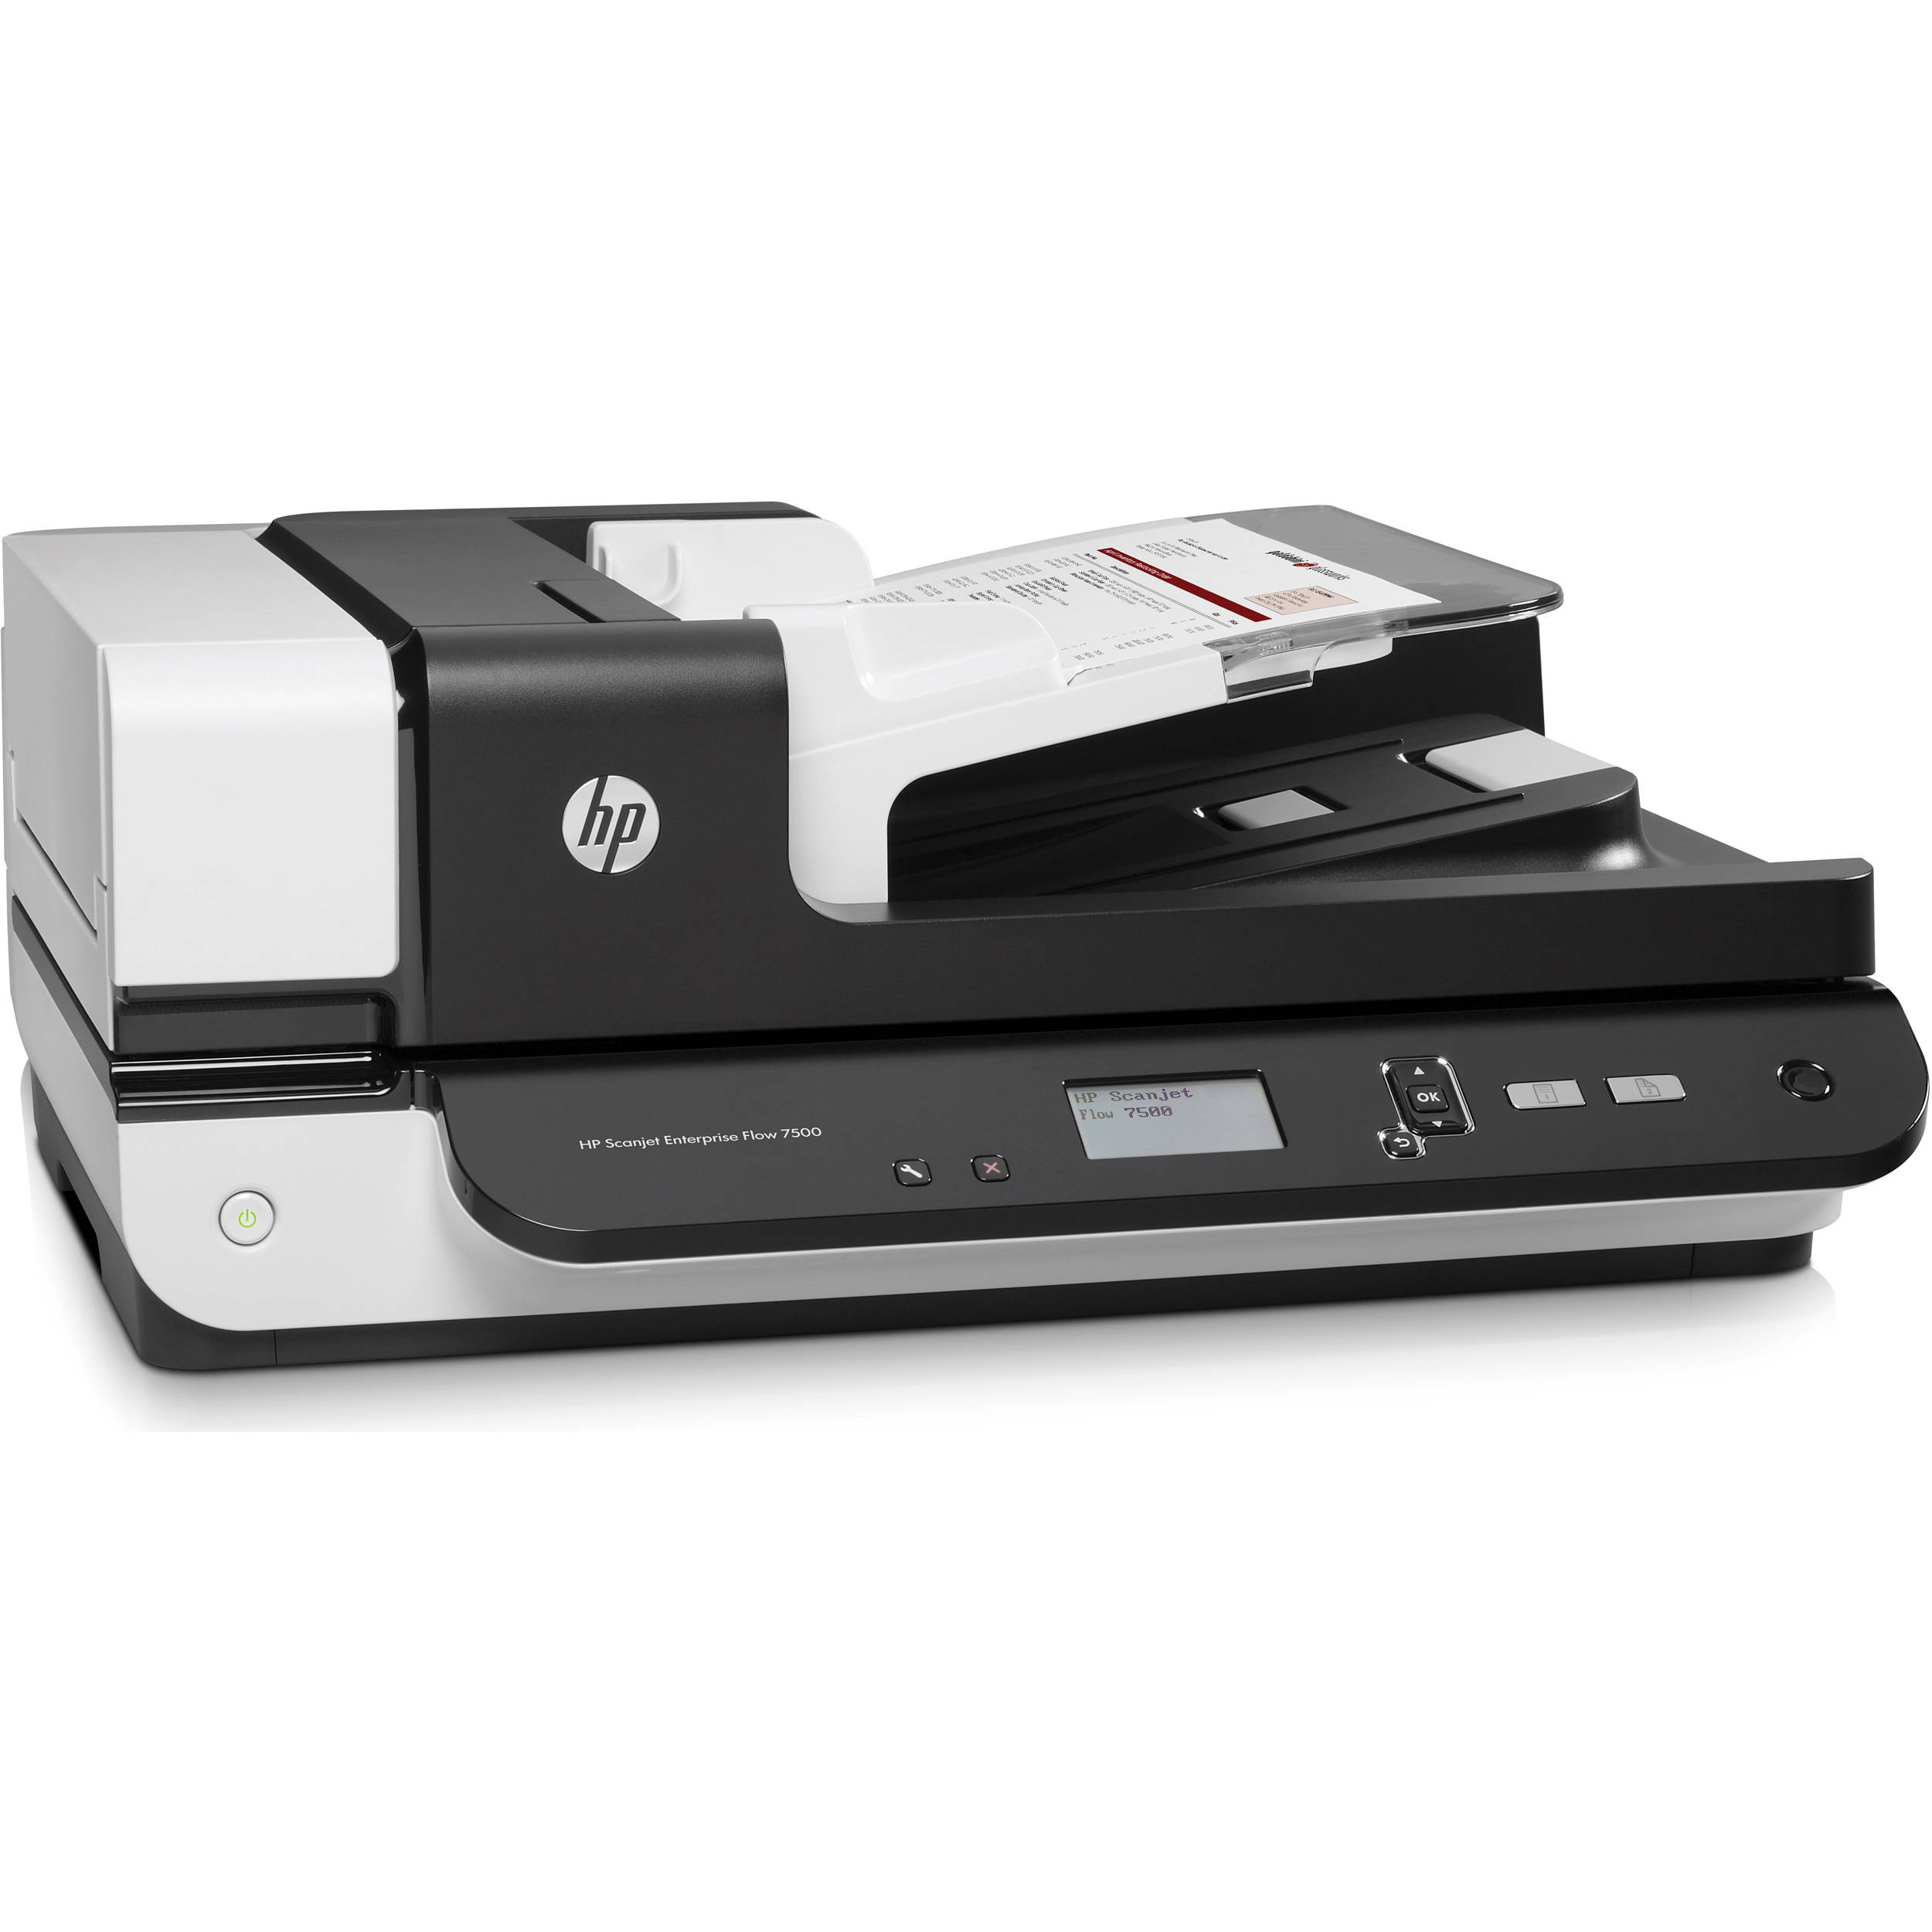 HP SCANJET 5S DRIVERS FOR WINDOWS DOWNLOAD